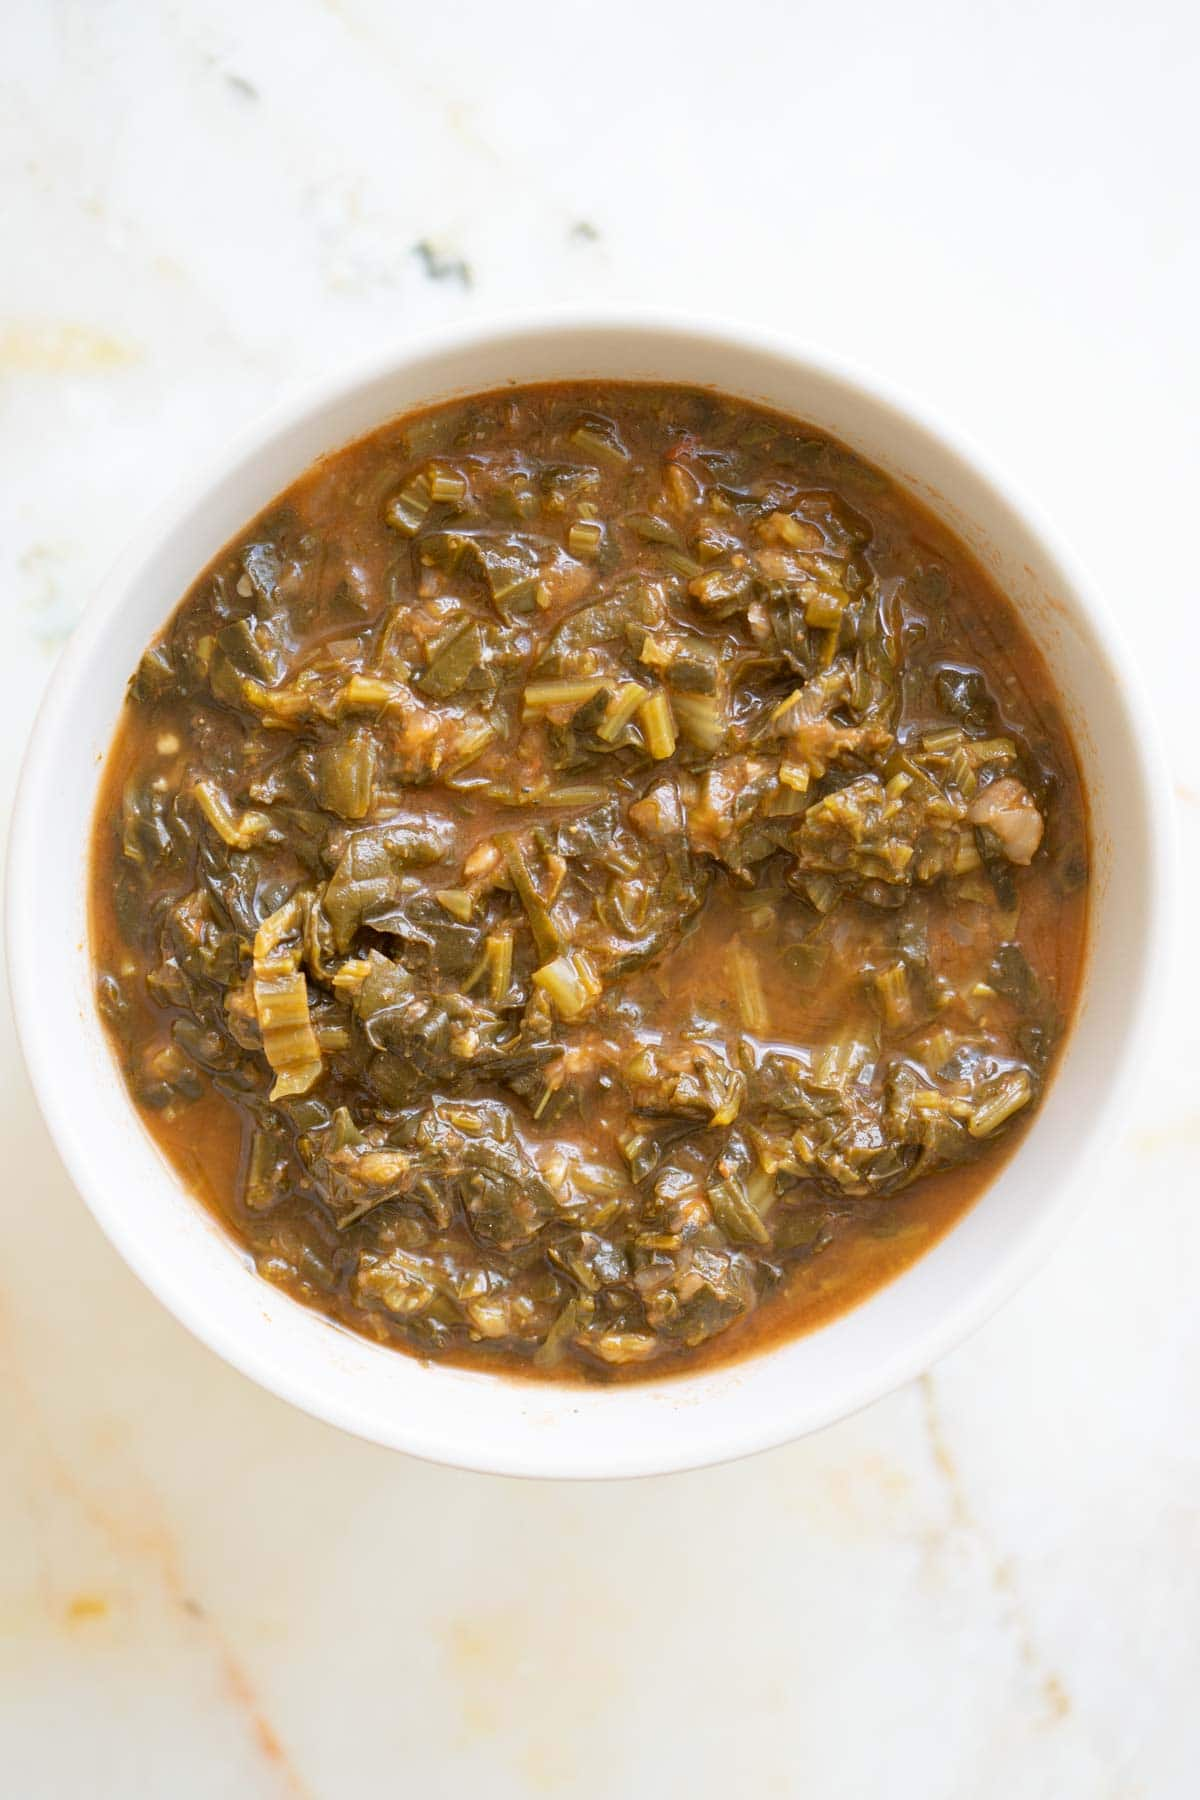 Egyptian sauteed spinach with tomato sauce in a bowl